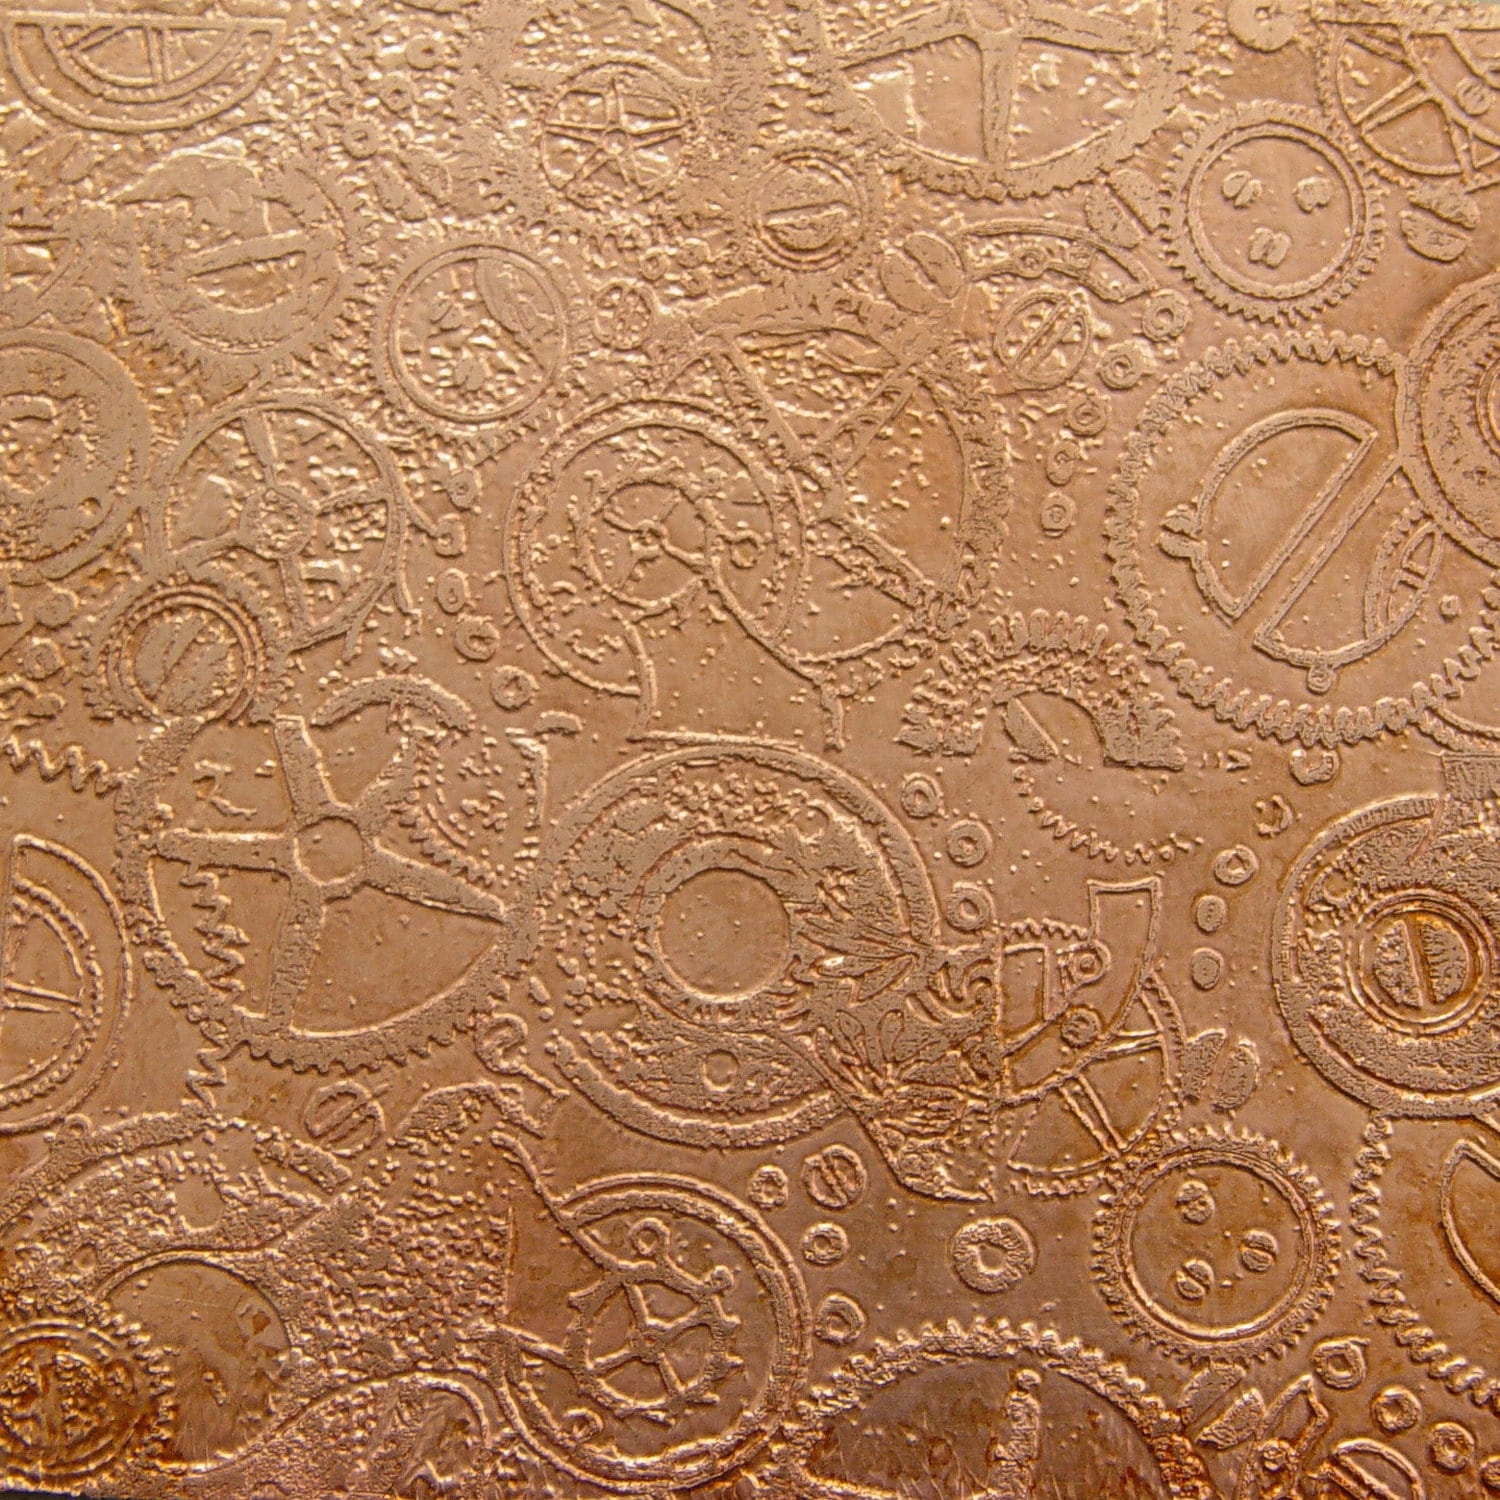 Etched Copper Sheet Steampunk Circles Cogs Gears 4x3